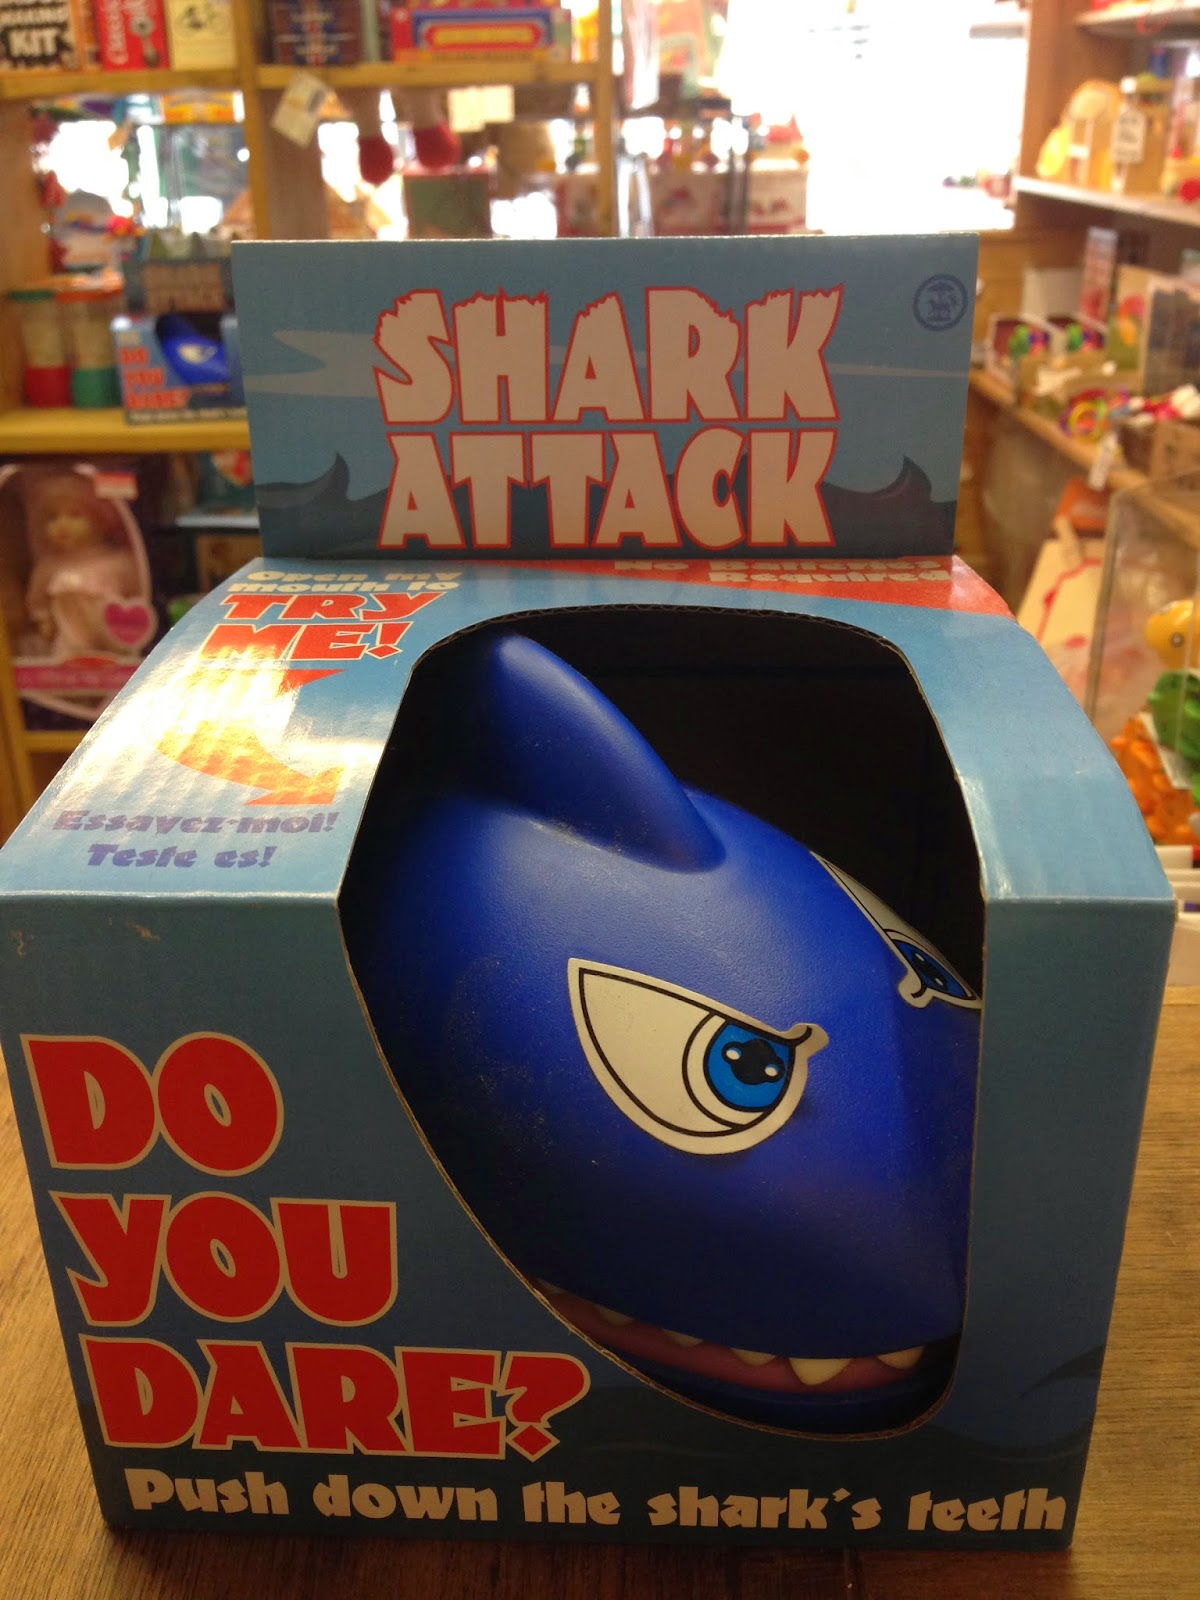 http://www.toyday.co.uk/shop/games-puzzles/games/shark-attack-game/prod_4284.html